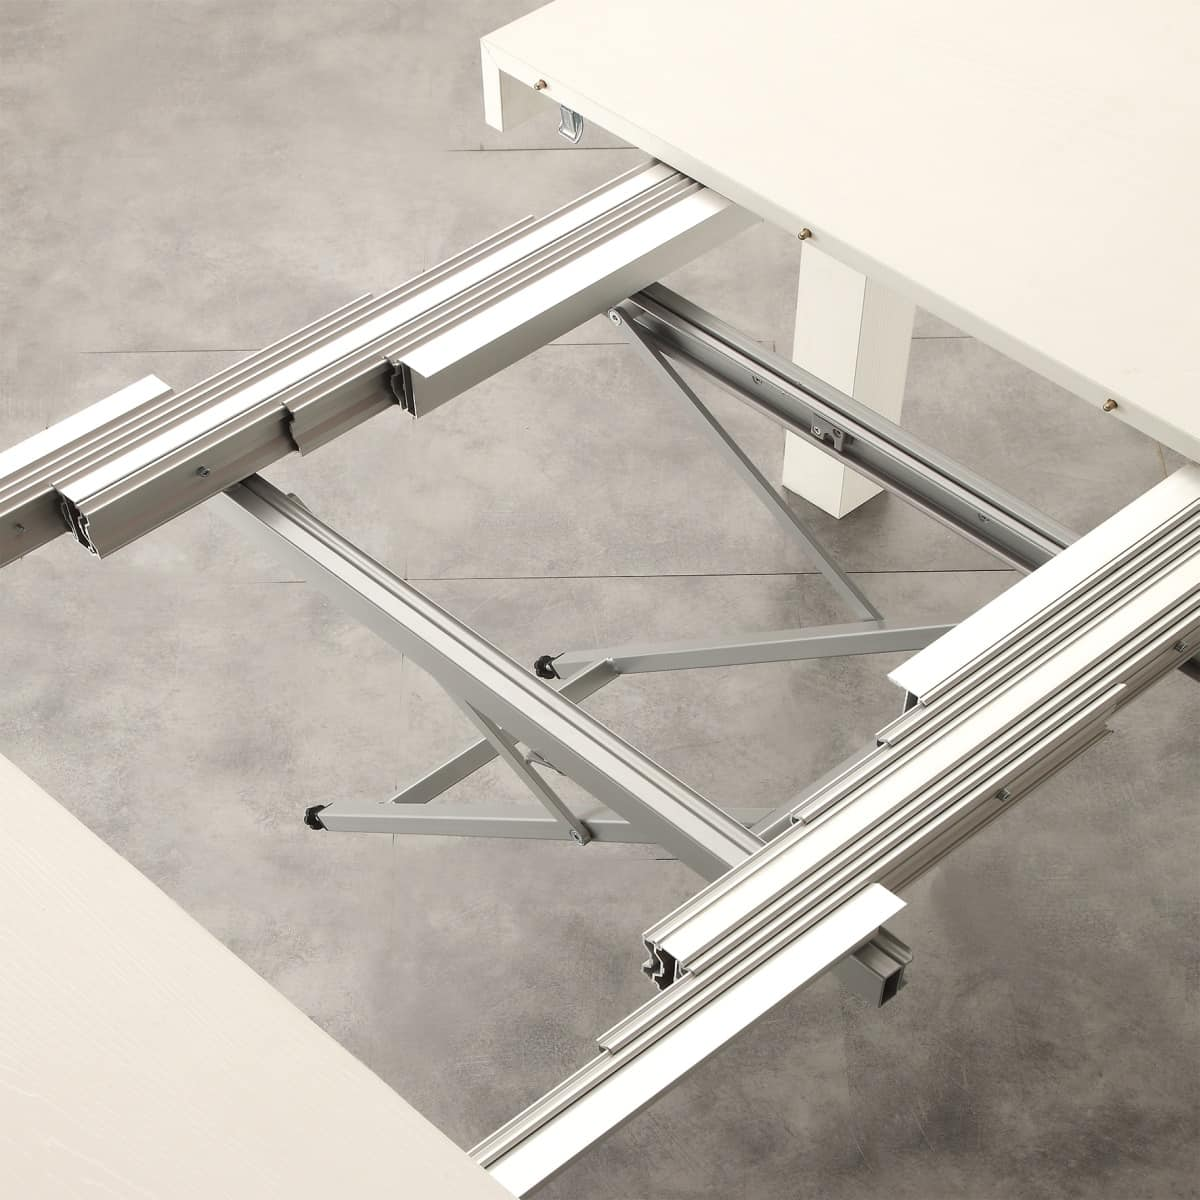 Art. 634 Aladin, Extendable table with various extensions, made of wood